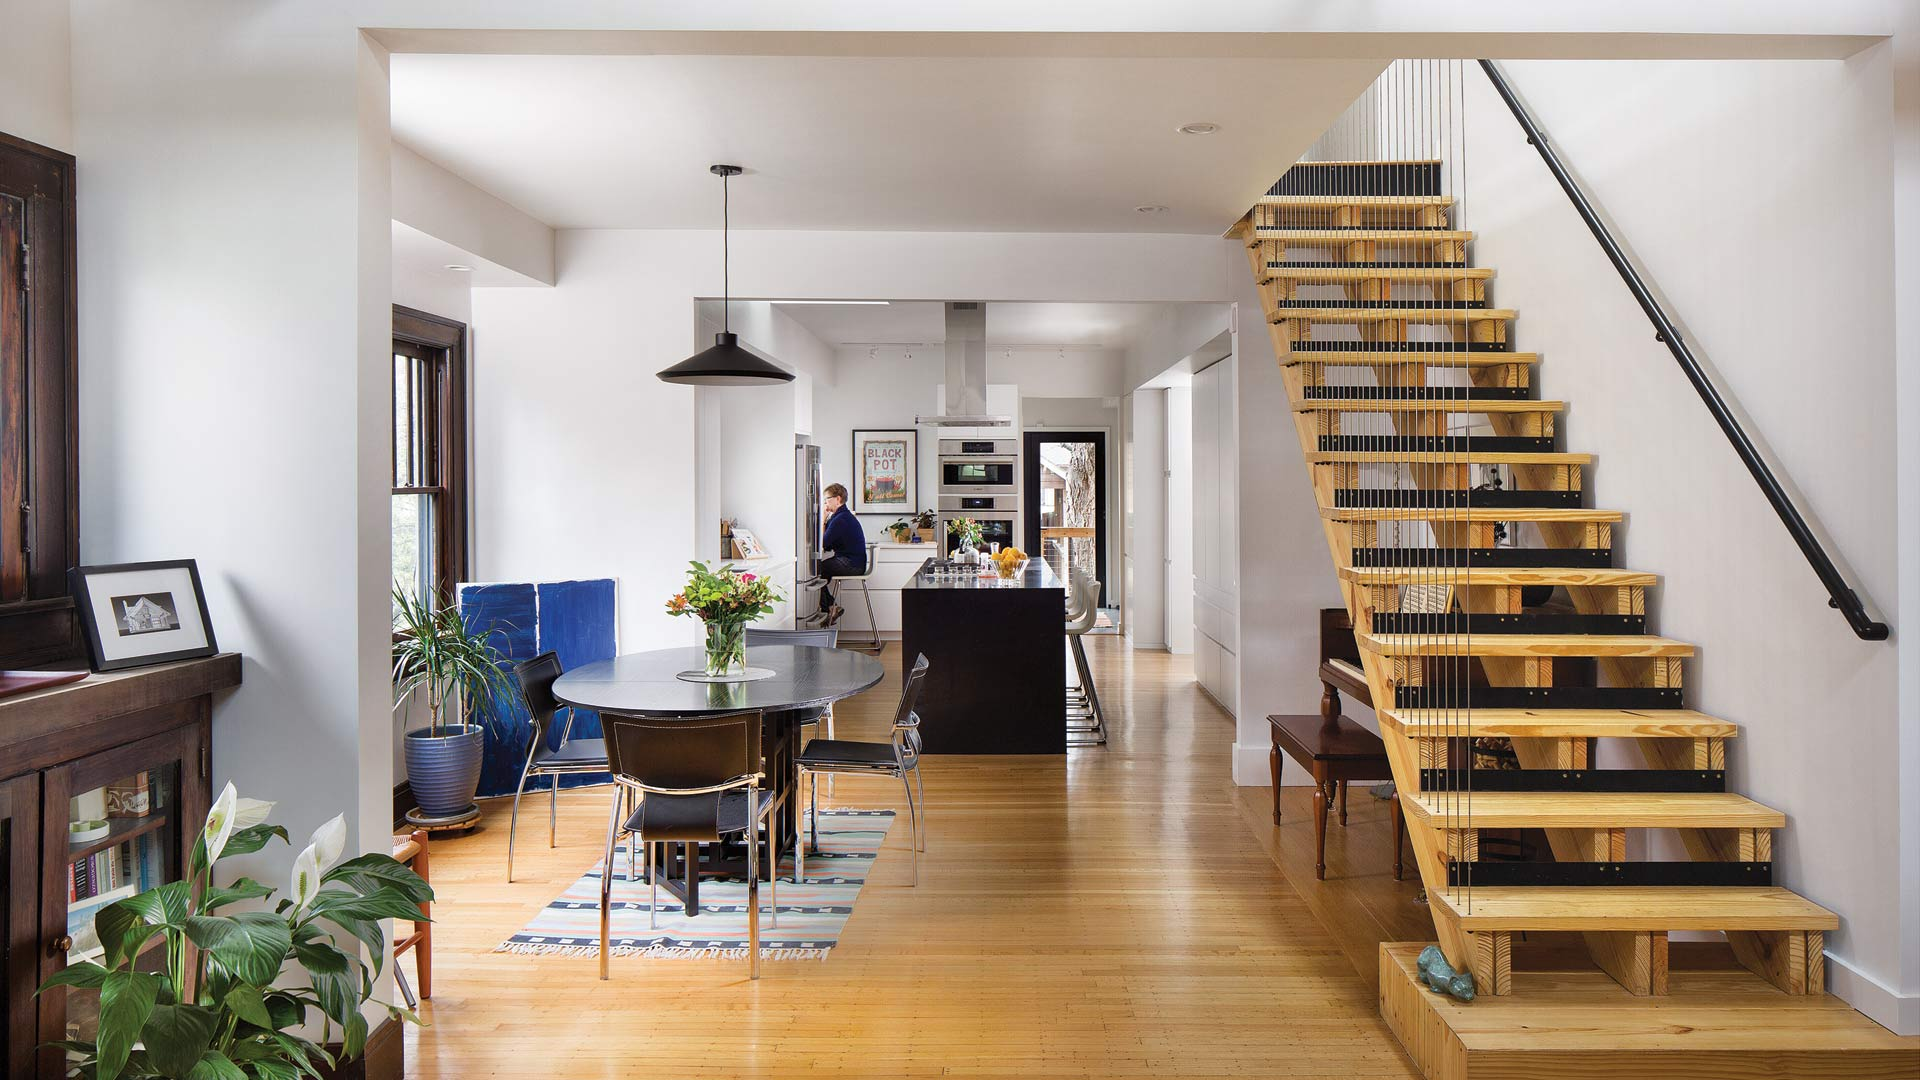 Dining, Open Riser Stair, and Kitchen are integrated into new open concept plan - Broad Ripple Modern Craftsman Dwelling on Carrollton Avenue - Indianapolis, Indiana